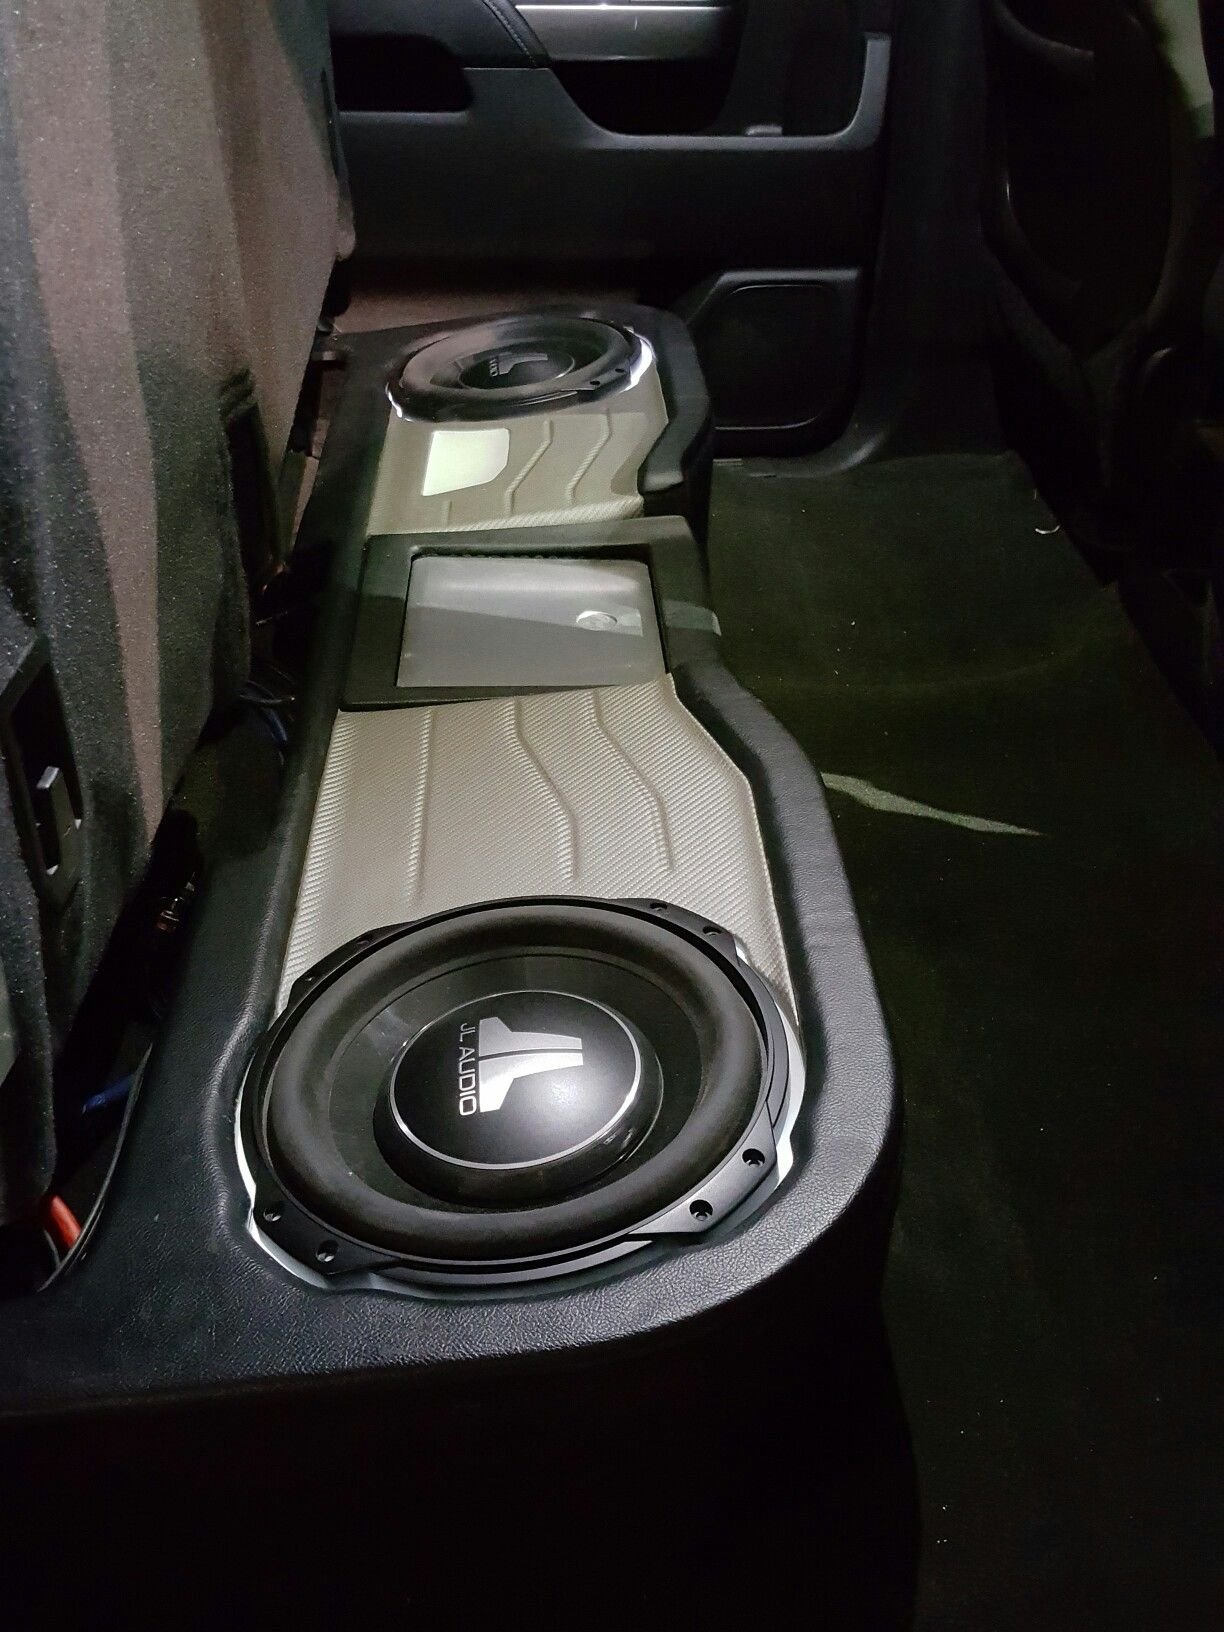 Truck Subwoofer Underseat : truck, subwoofer, underseat, Chevy, Underseat, Enclosure, Audio, Shallow, Rings, Around, Subs., #SoundTheoryCu…, Truck, Audio,, System,, Installation